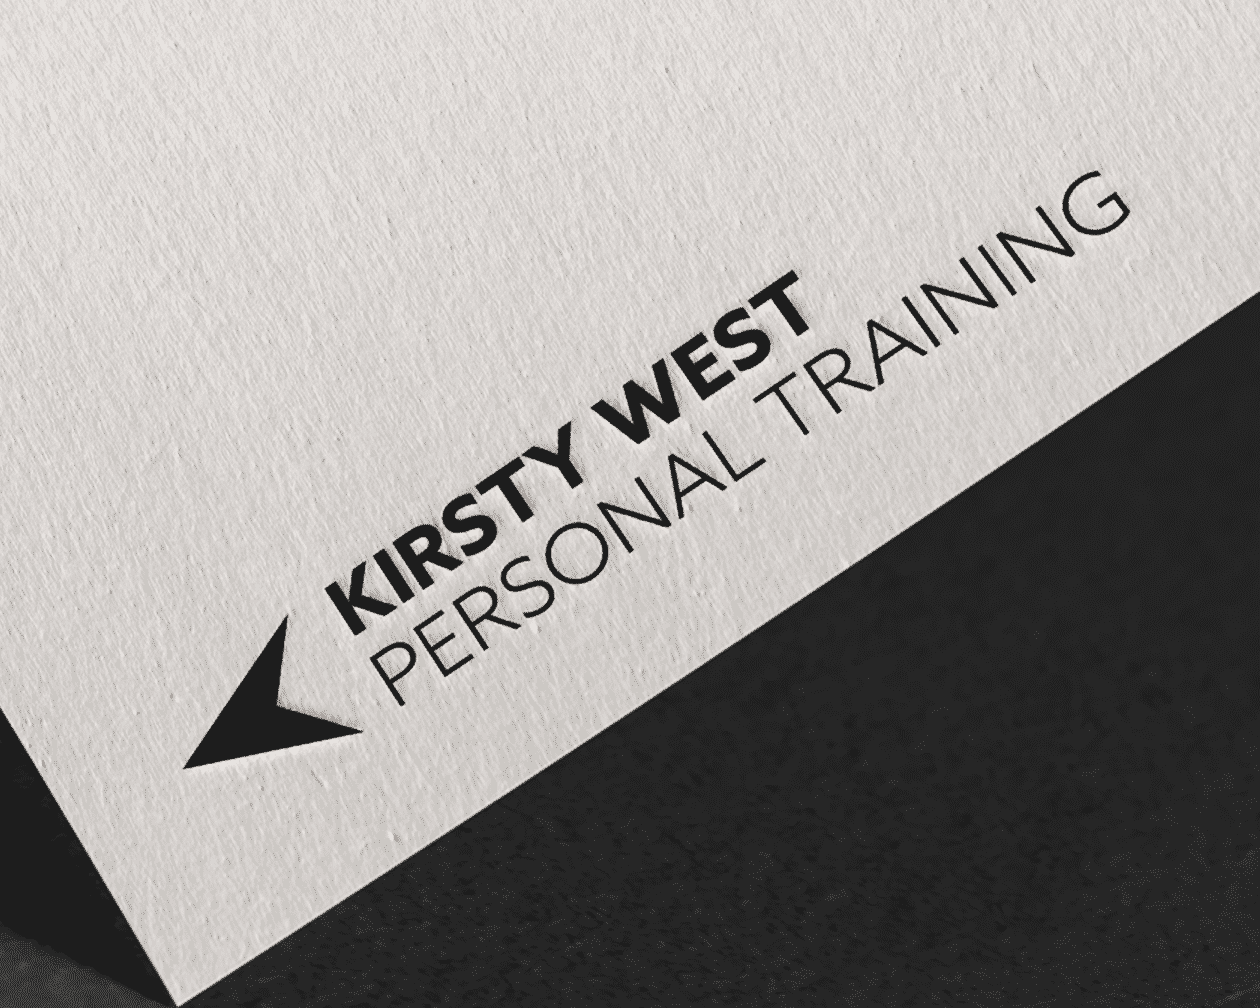 Kirsty West Logo on Paper